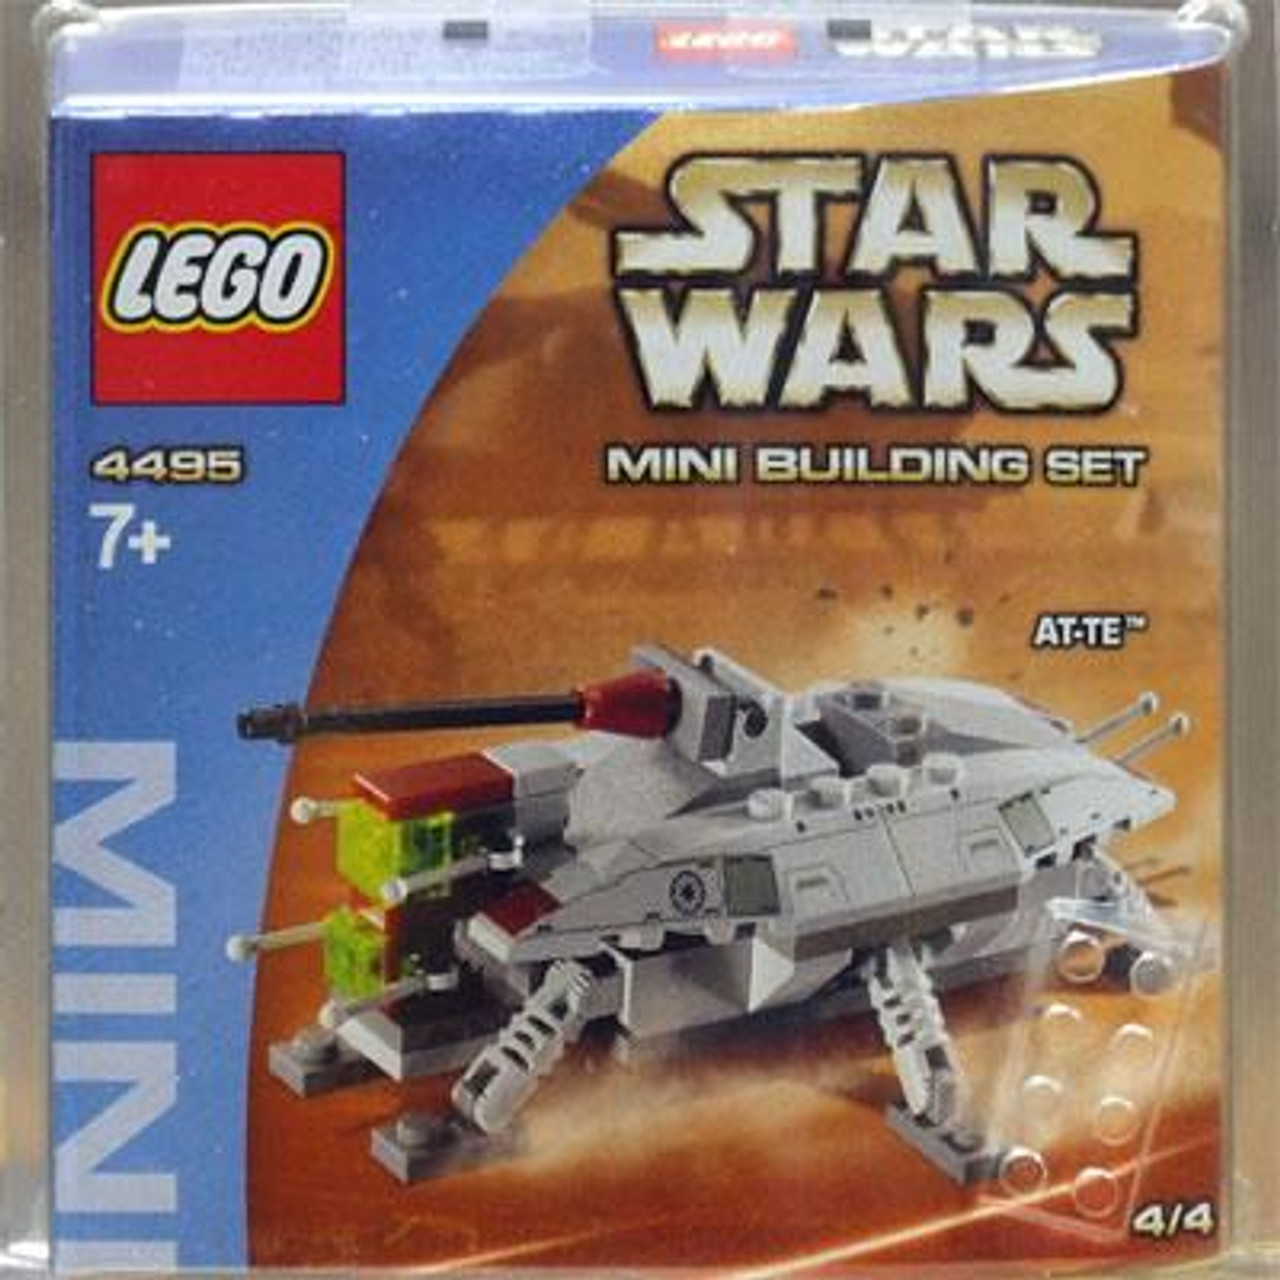 LEGO Star Wars The Clone Wars Mini Building Sets AT-TE Set #4495